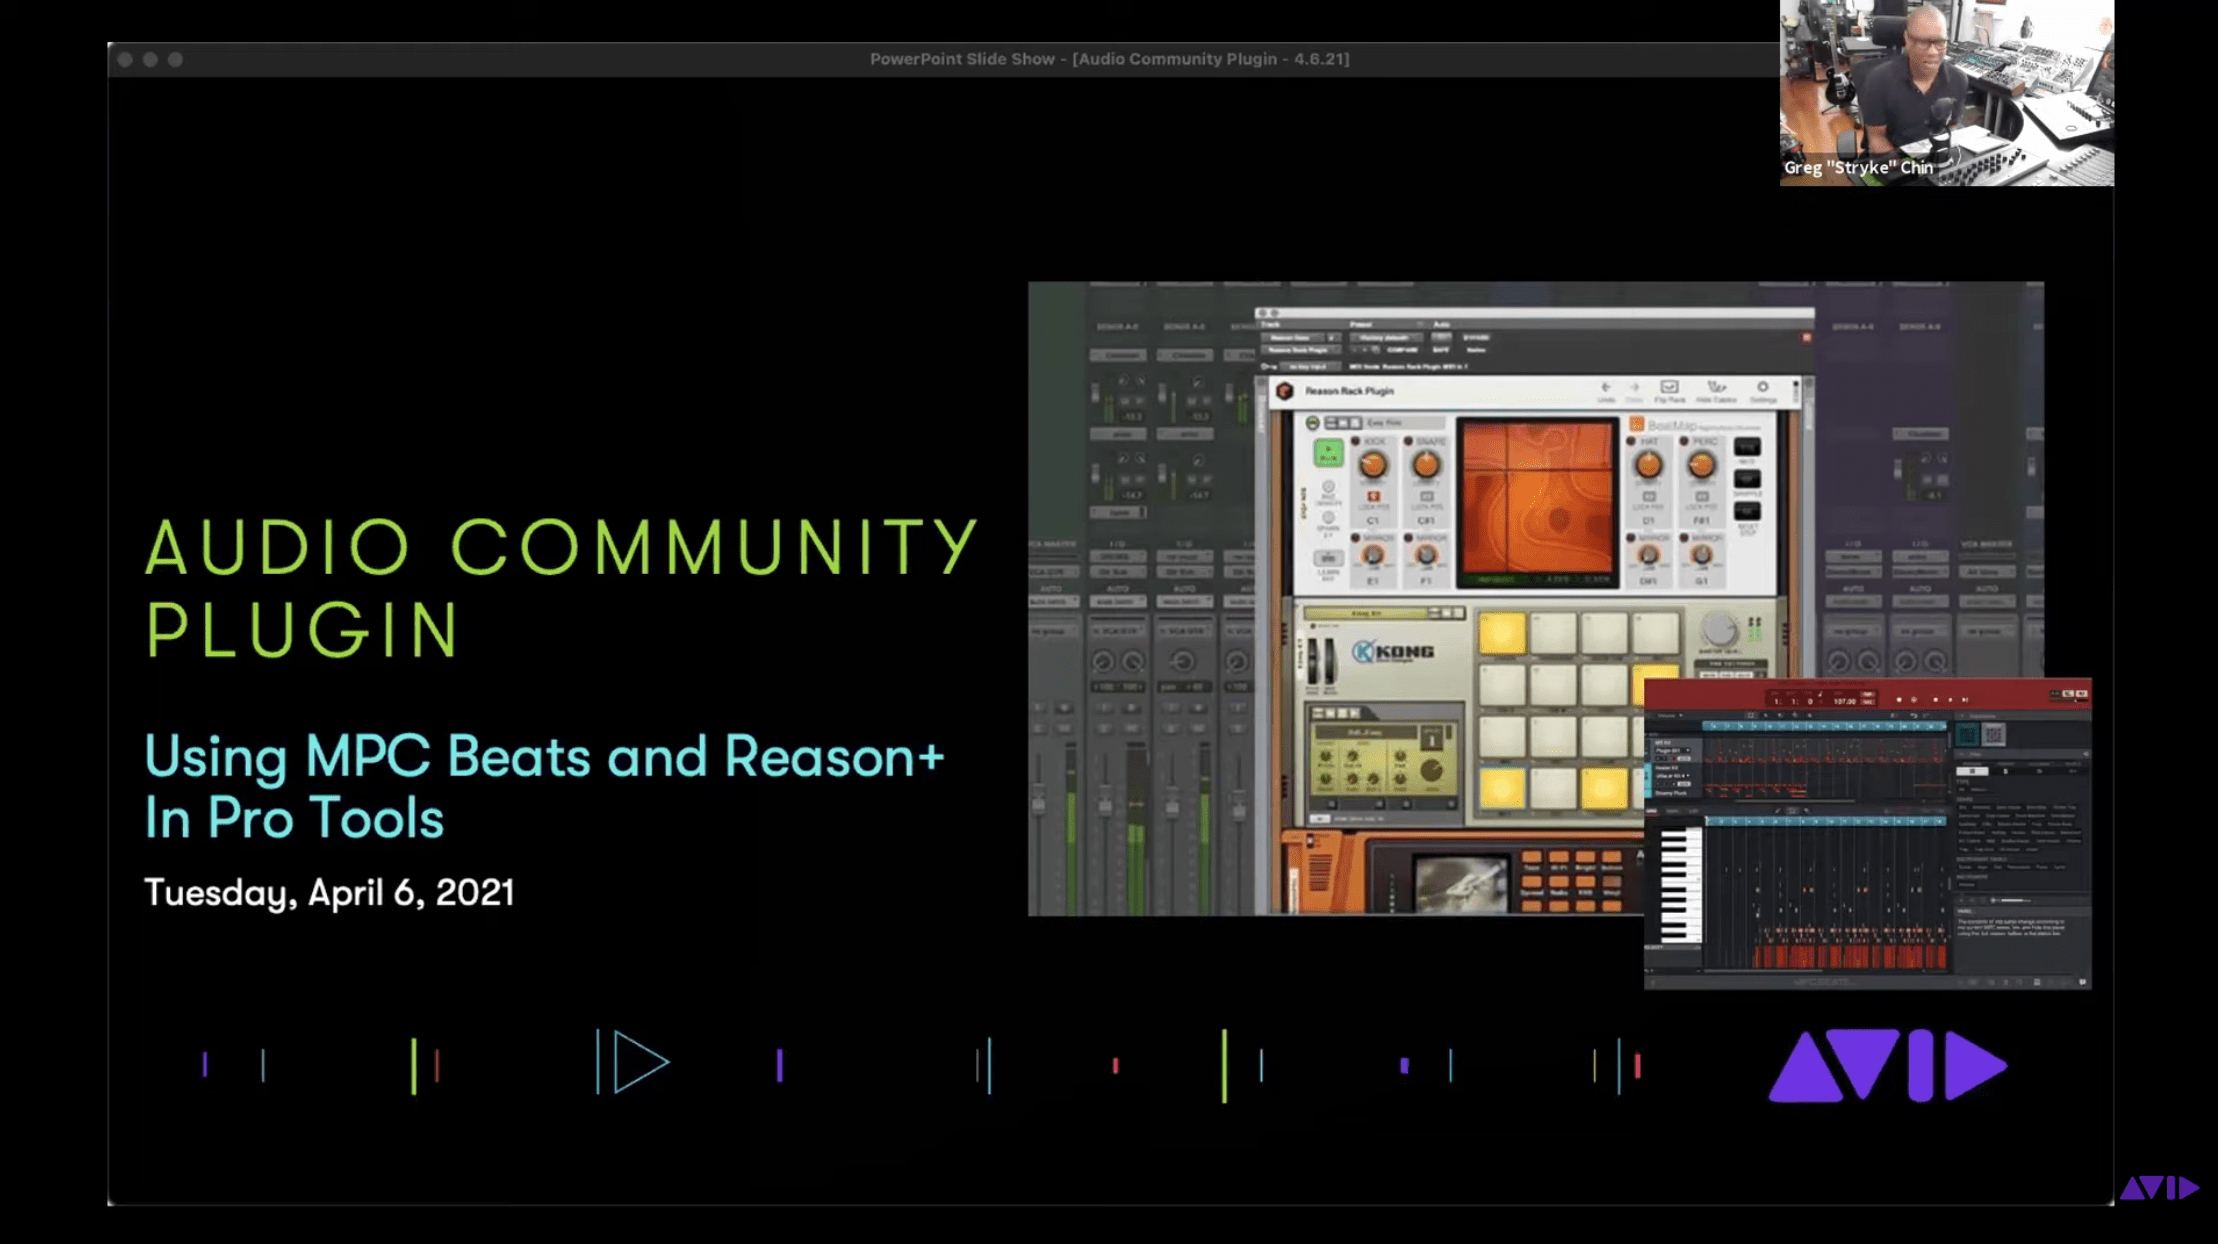 Using MPC Beats and Reason+ in Pro Tools